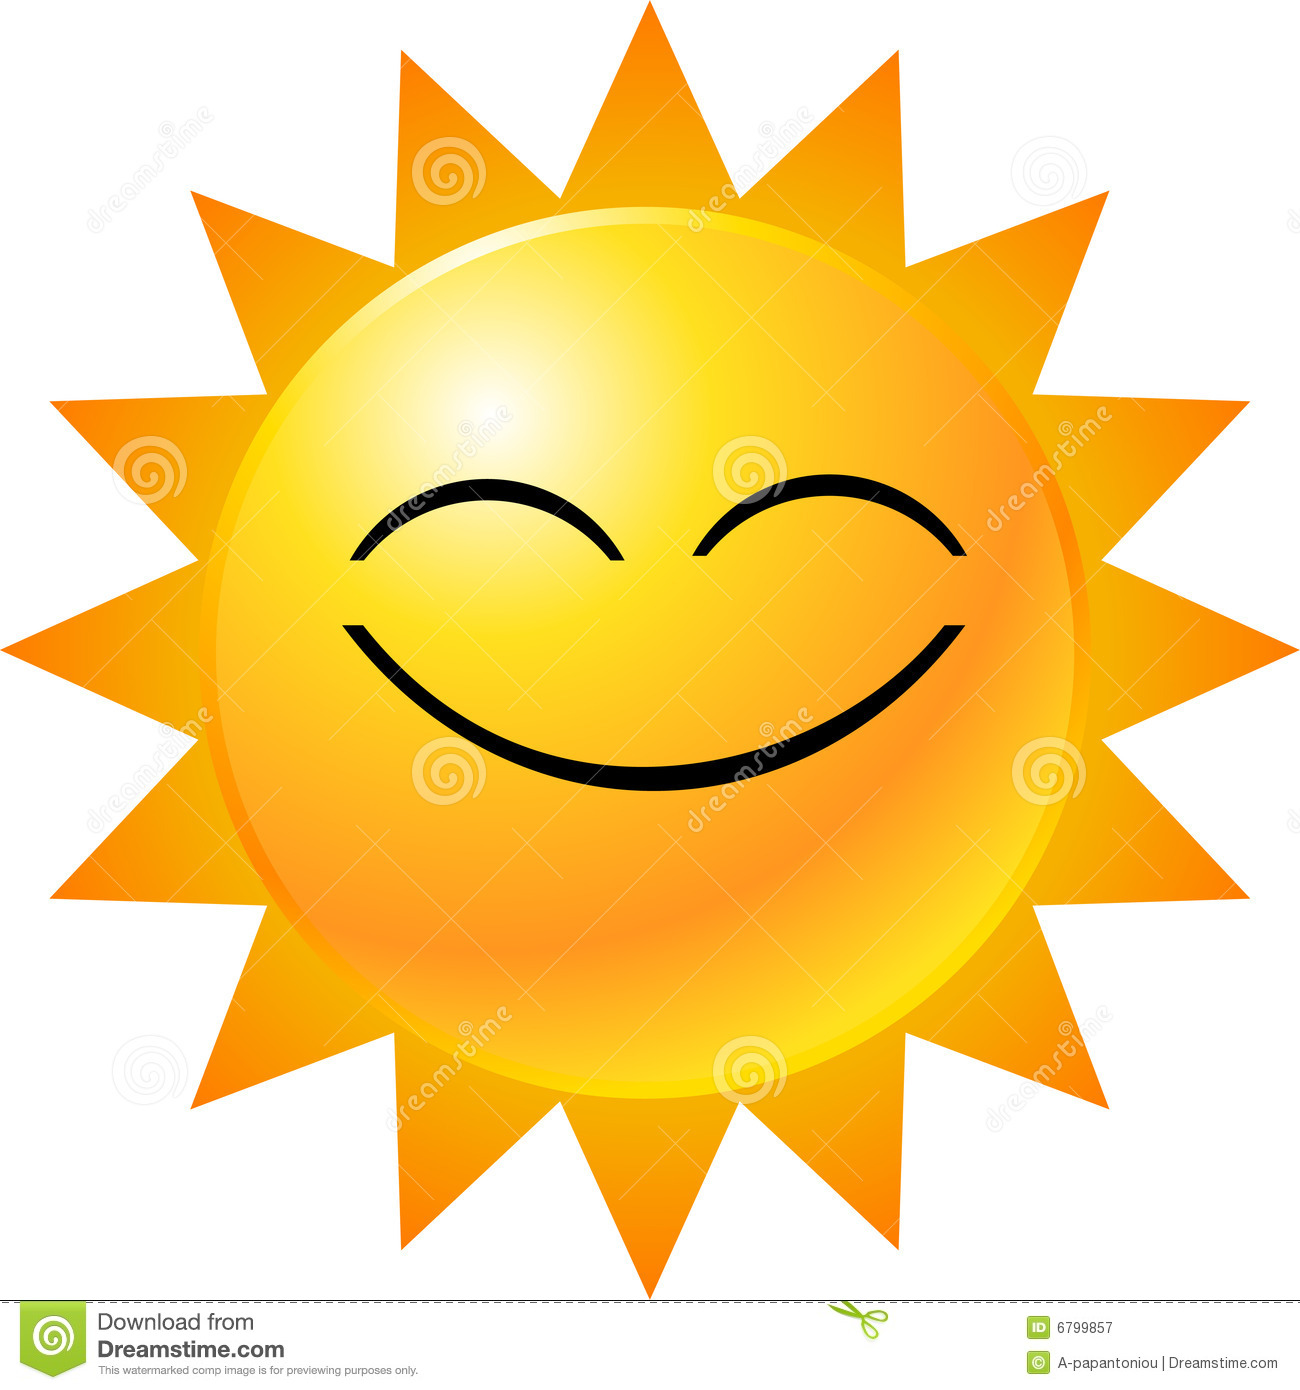 Good morning sunny clipart